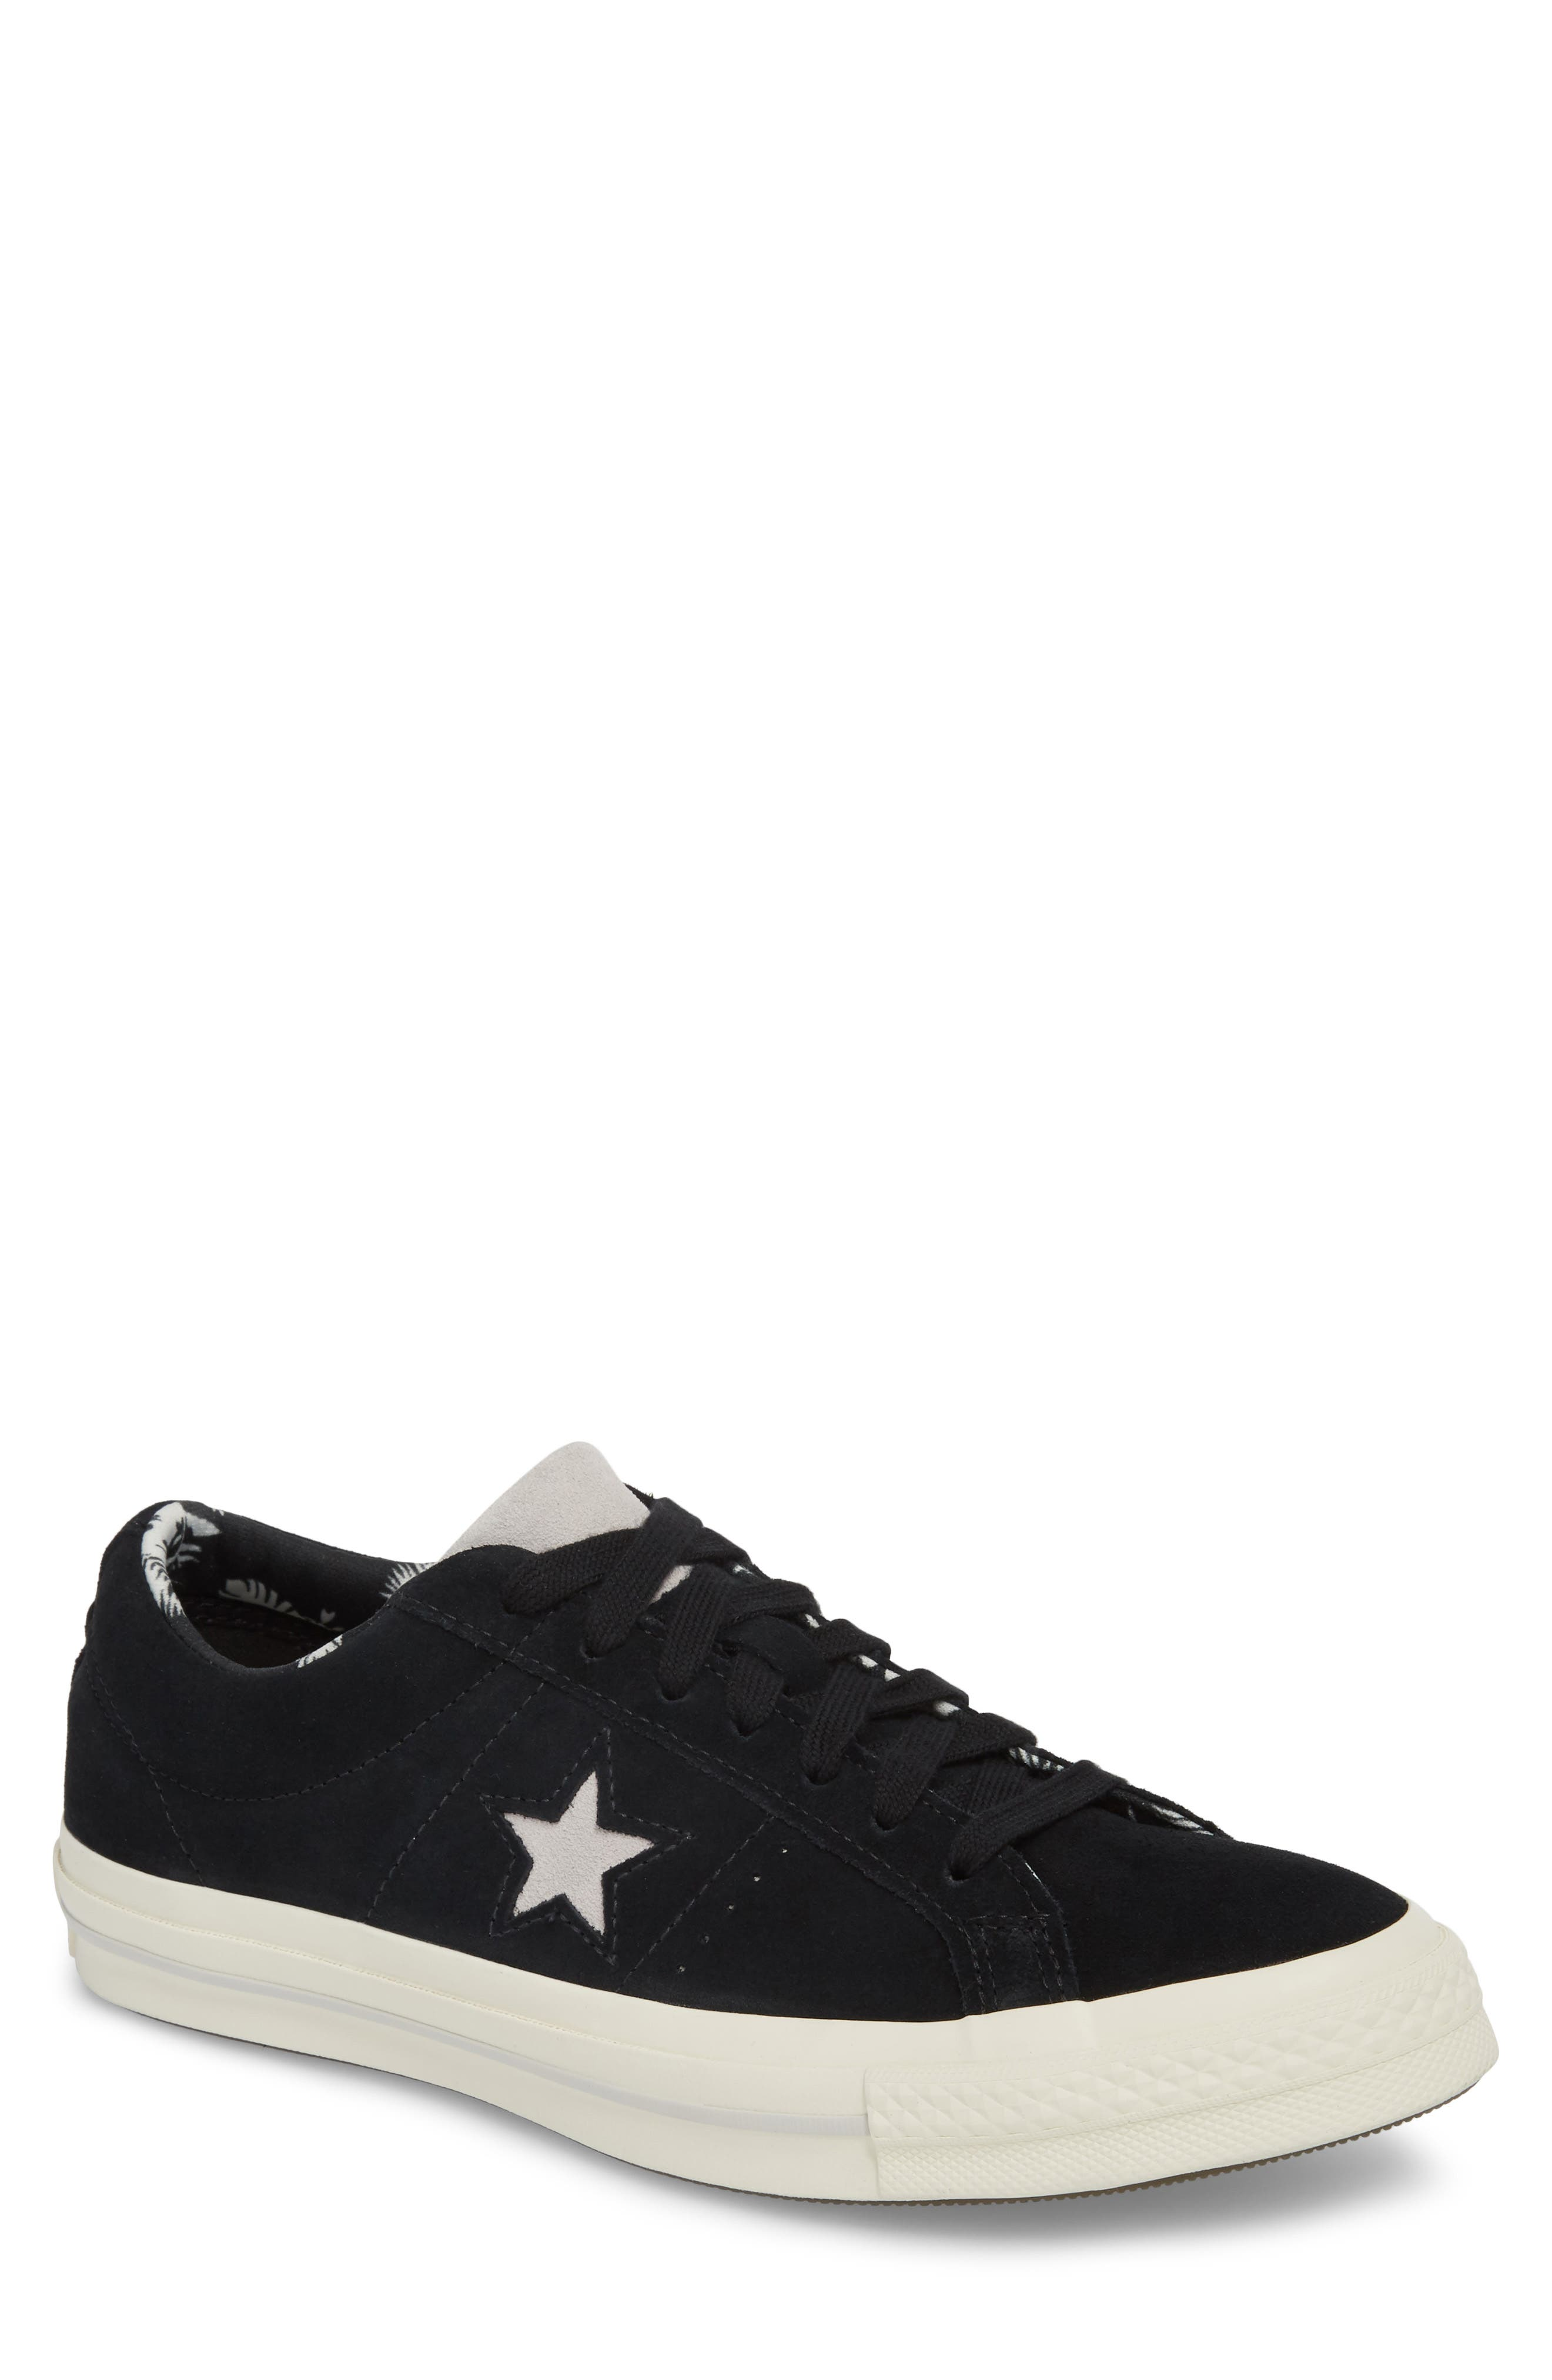 One-Star Tropical Sneaker,                             Main thumbnail 1, color,                             001